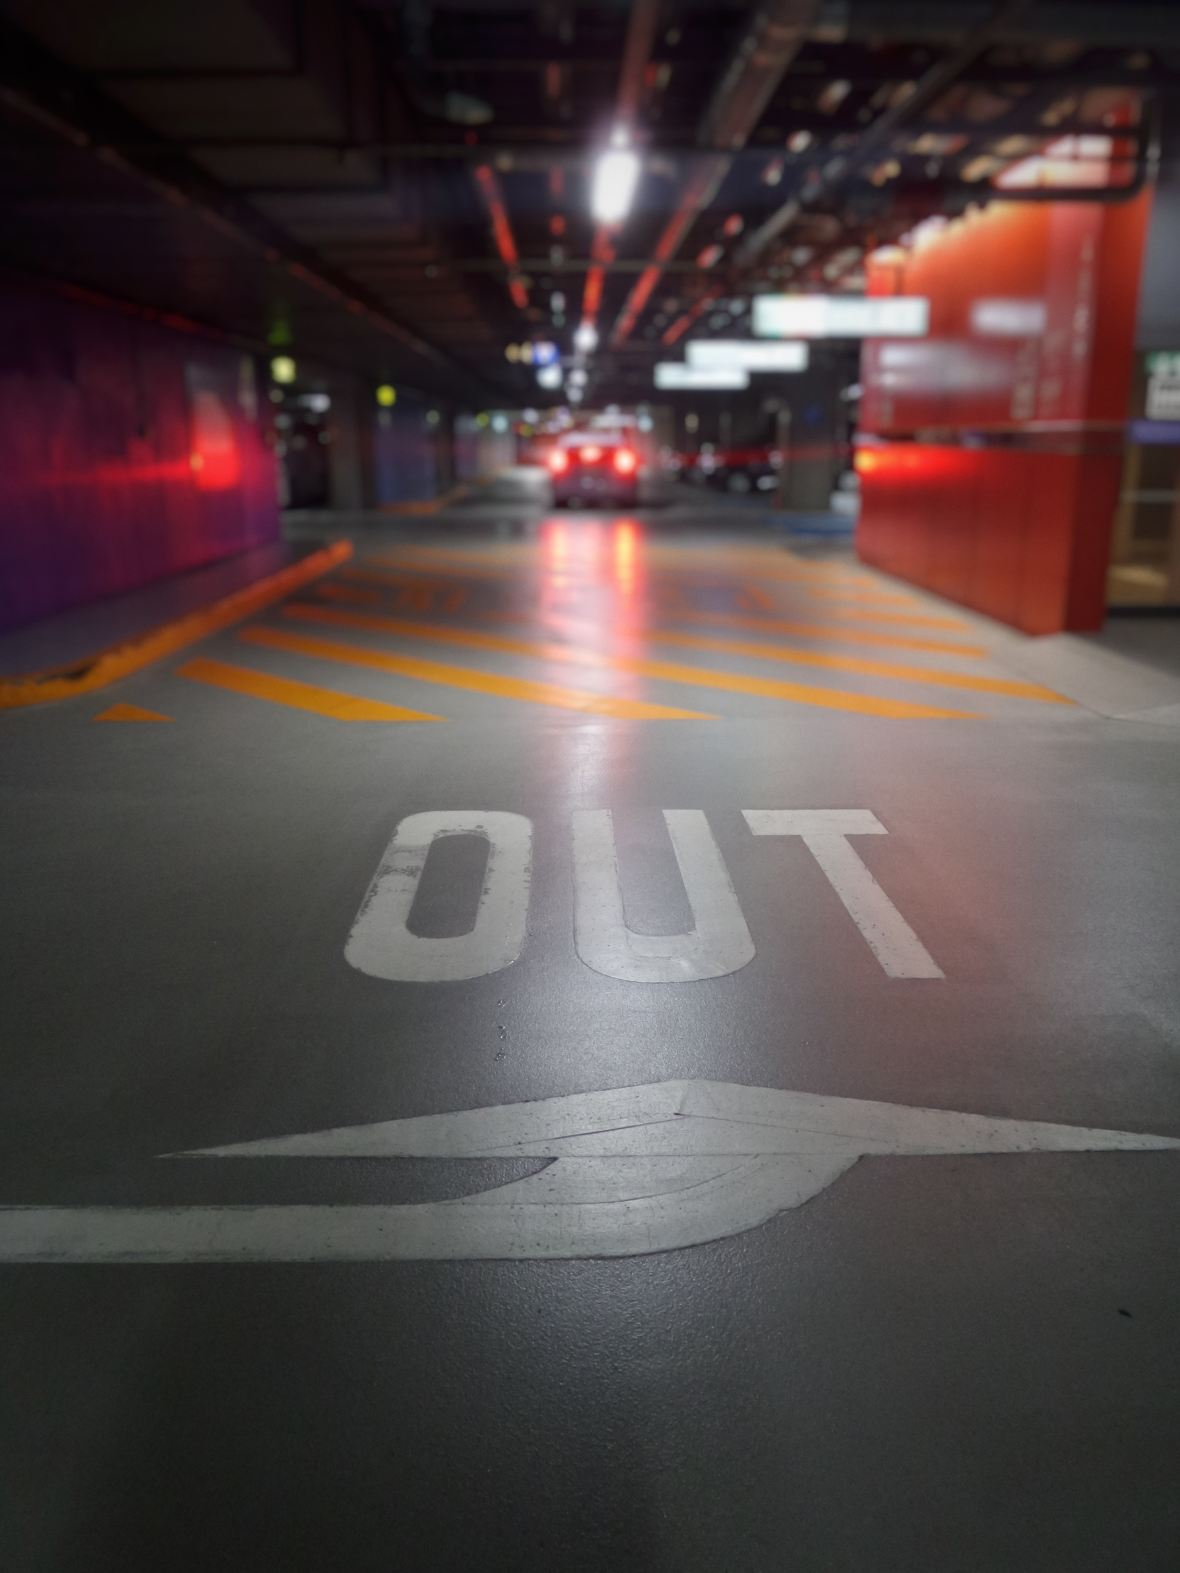 OUT sign painted on parking garage floor